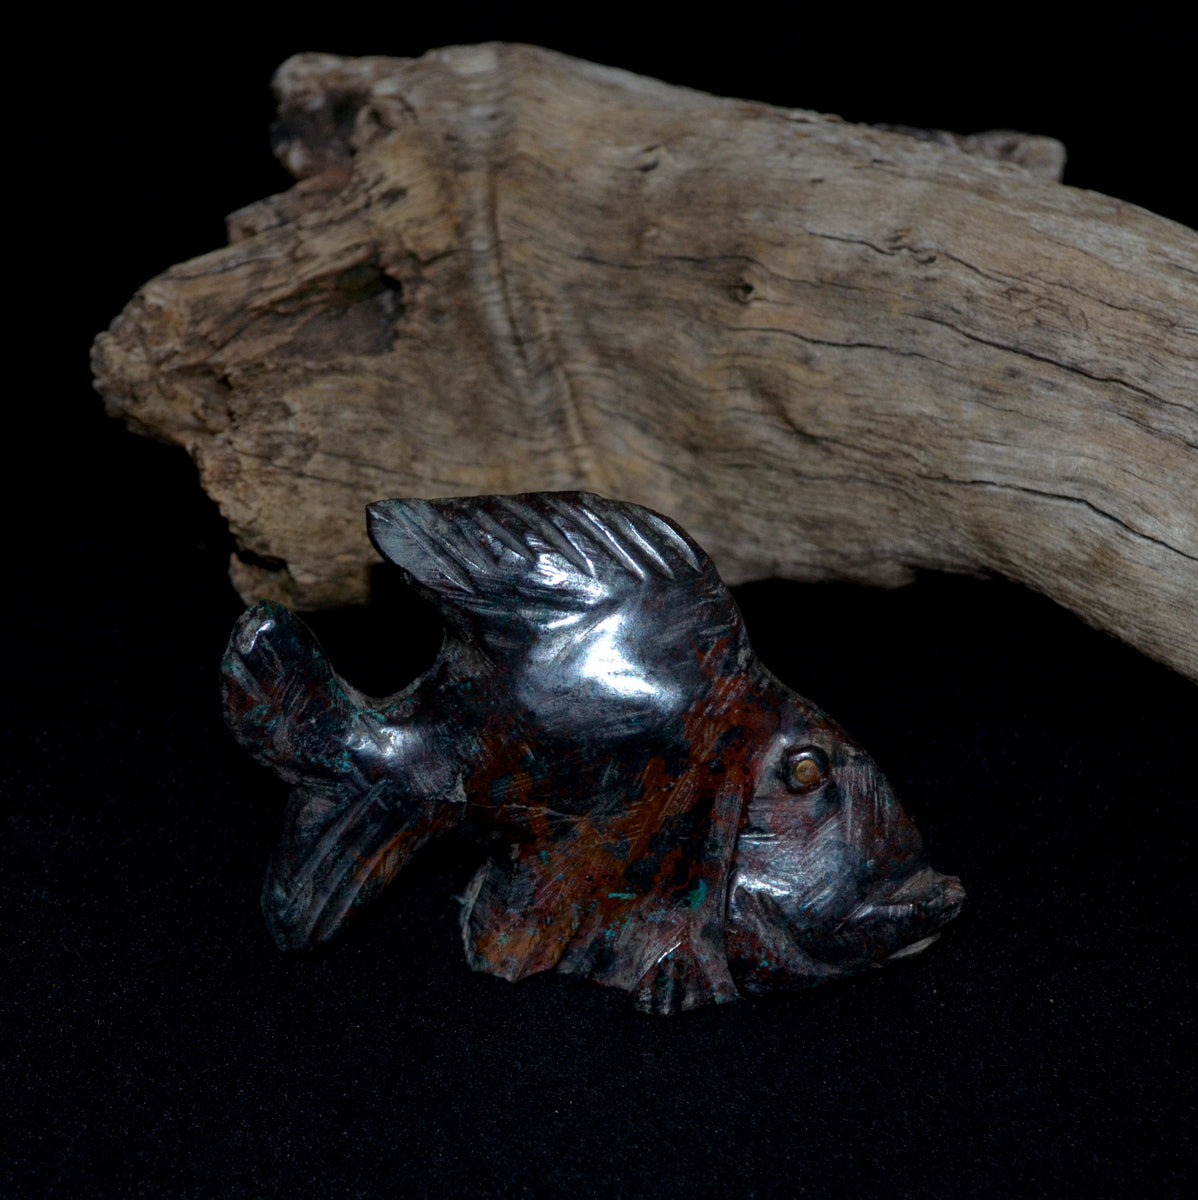 Shattuckite Cuprite Chrysocolla Hand Carved Fish - Humanity Spiritual Protective Grounding - Shop Now at Illiom Crystals - Afterpay Available